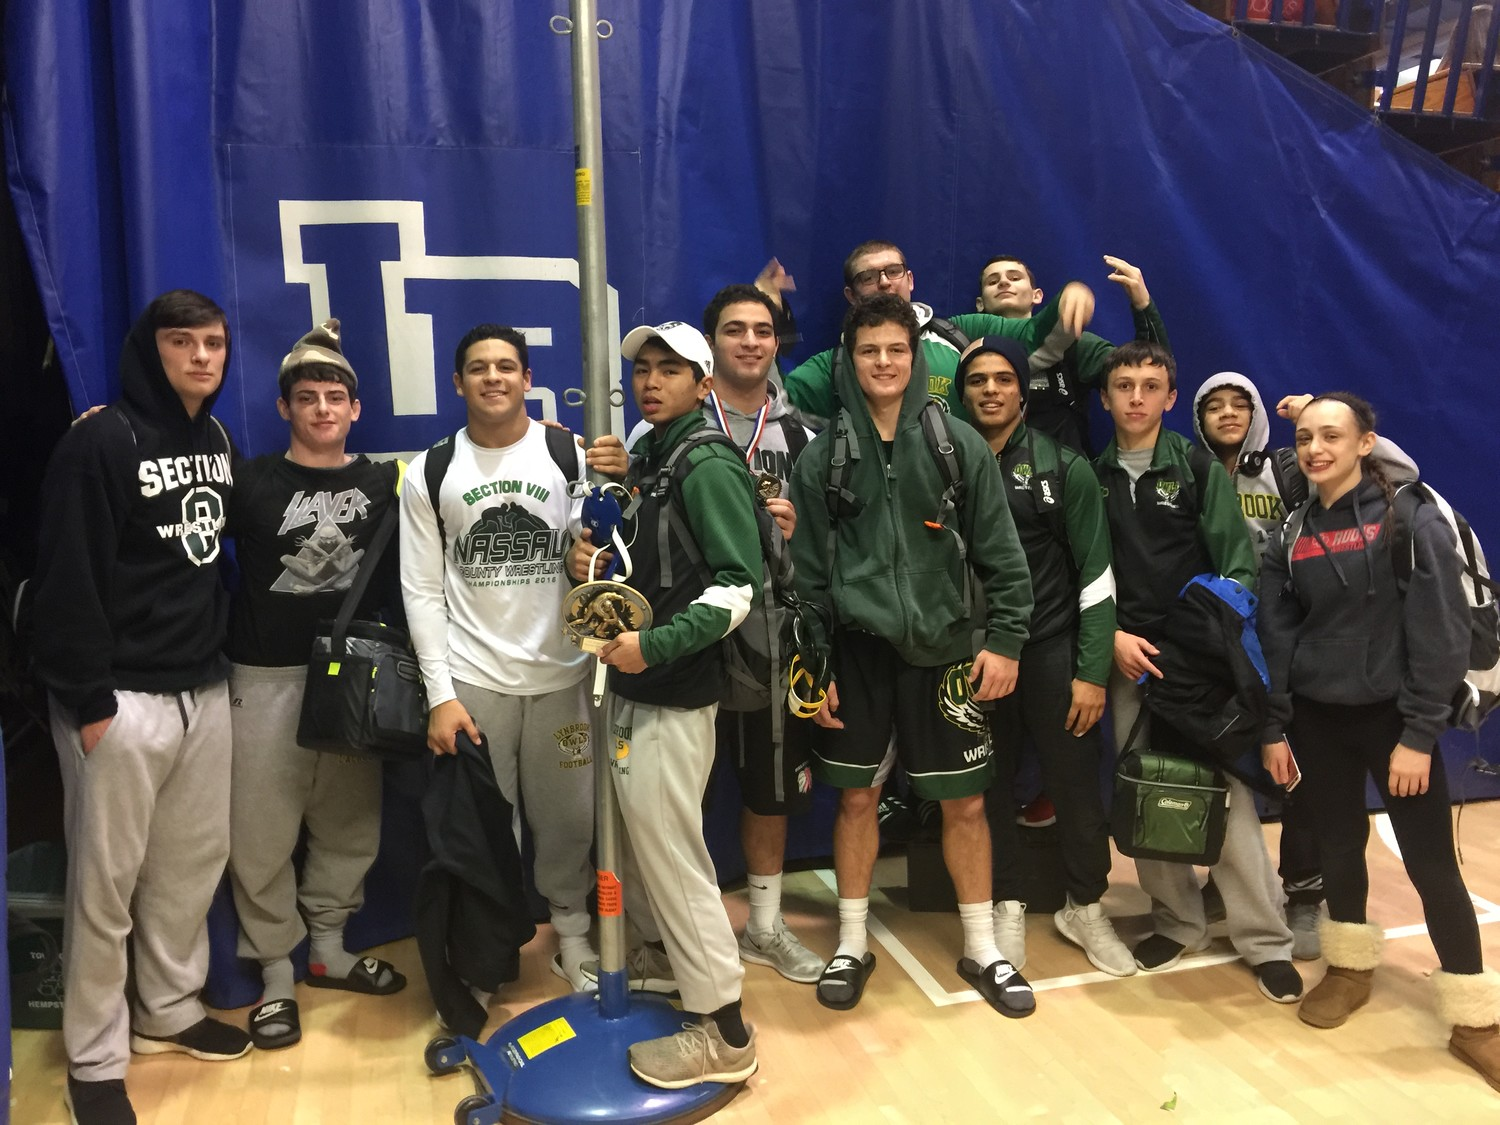 The Lynbrook wrestling team placed fourth out of 15 teams in a recent tournament in Long Beach.